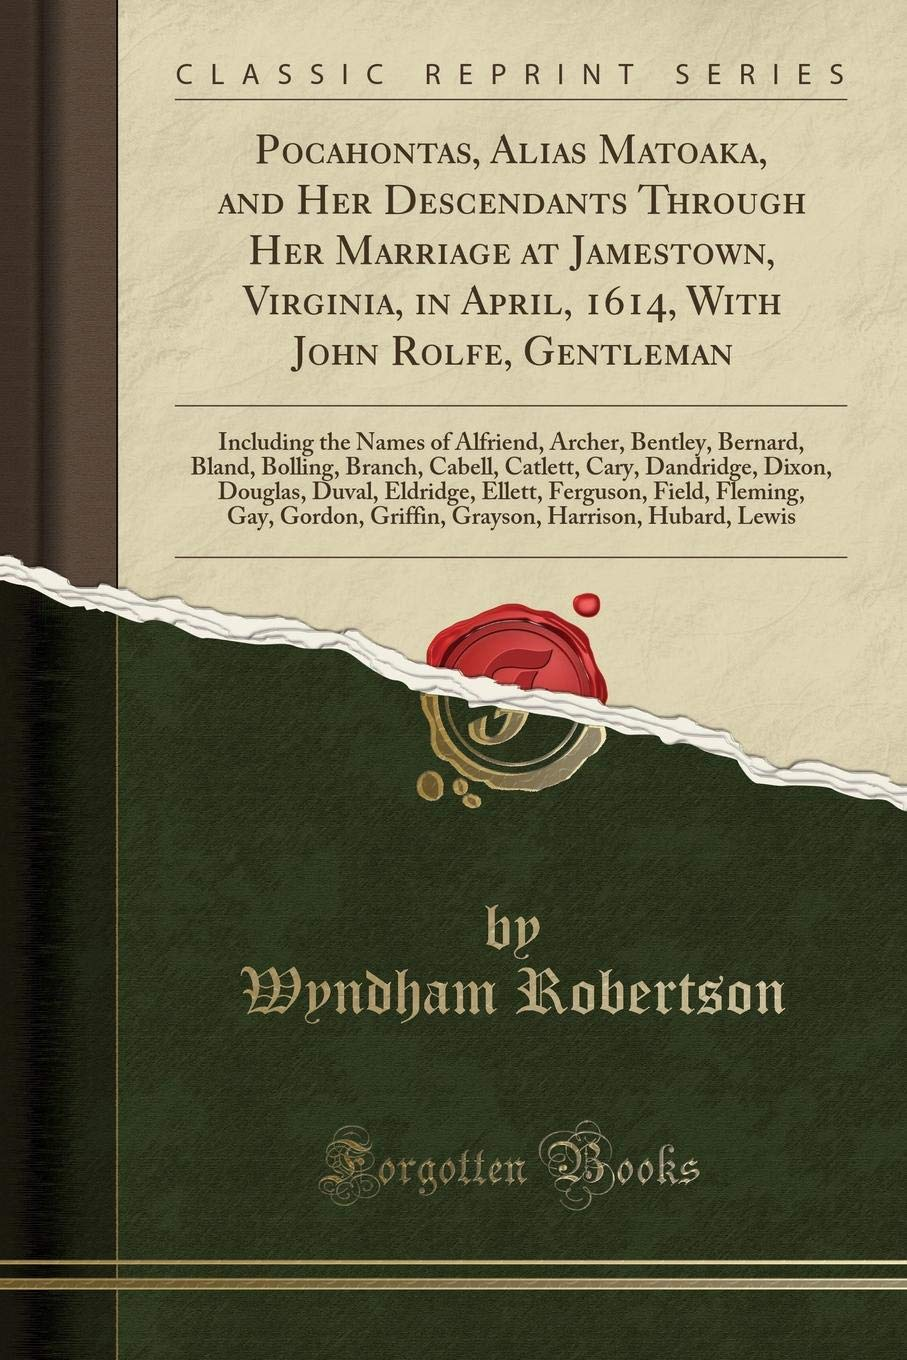 Pocahontas, Alias Matoaka, and Her Descendants Through Her Marriage at  Jamestown, Virginia, in April, 1614, With John Rolfe, Gentleman: Including  the .